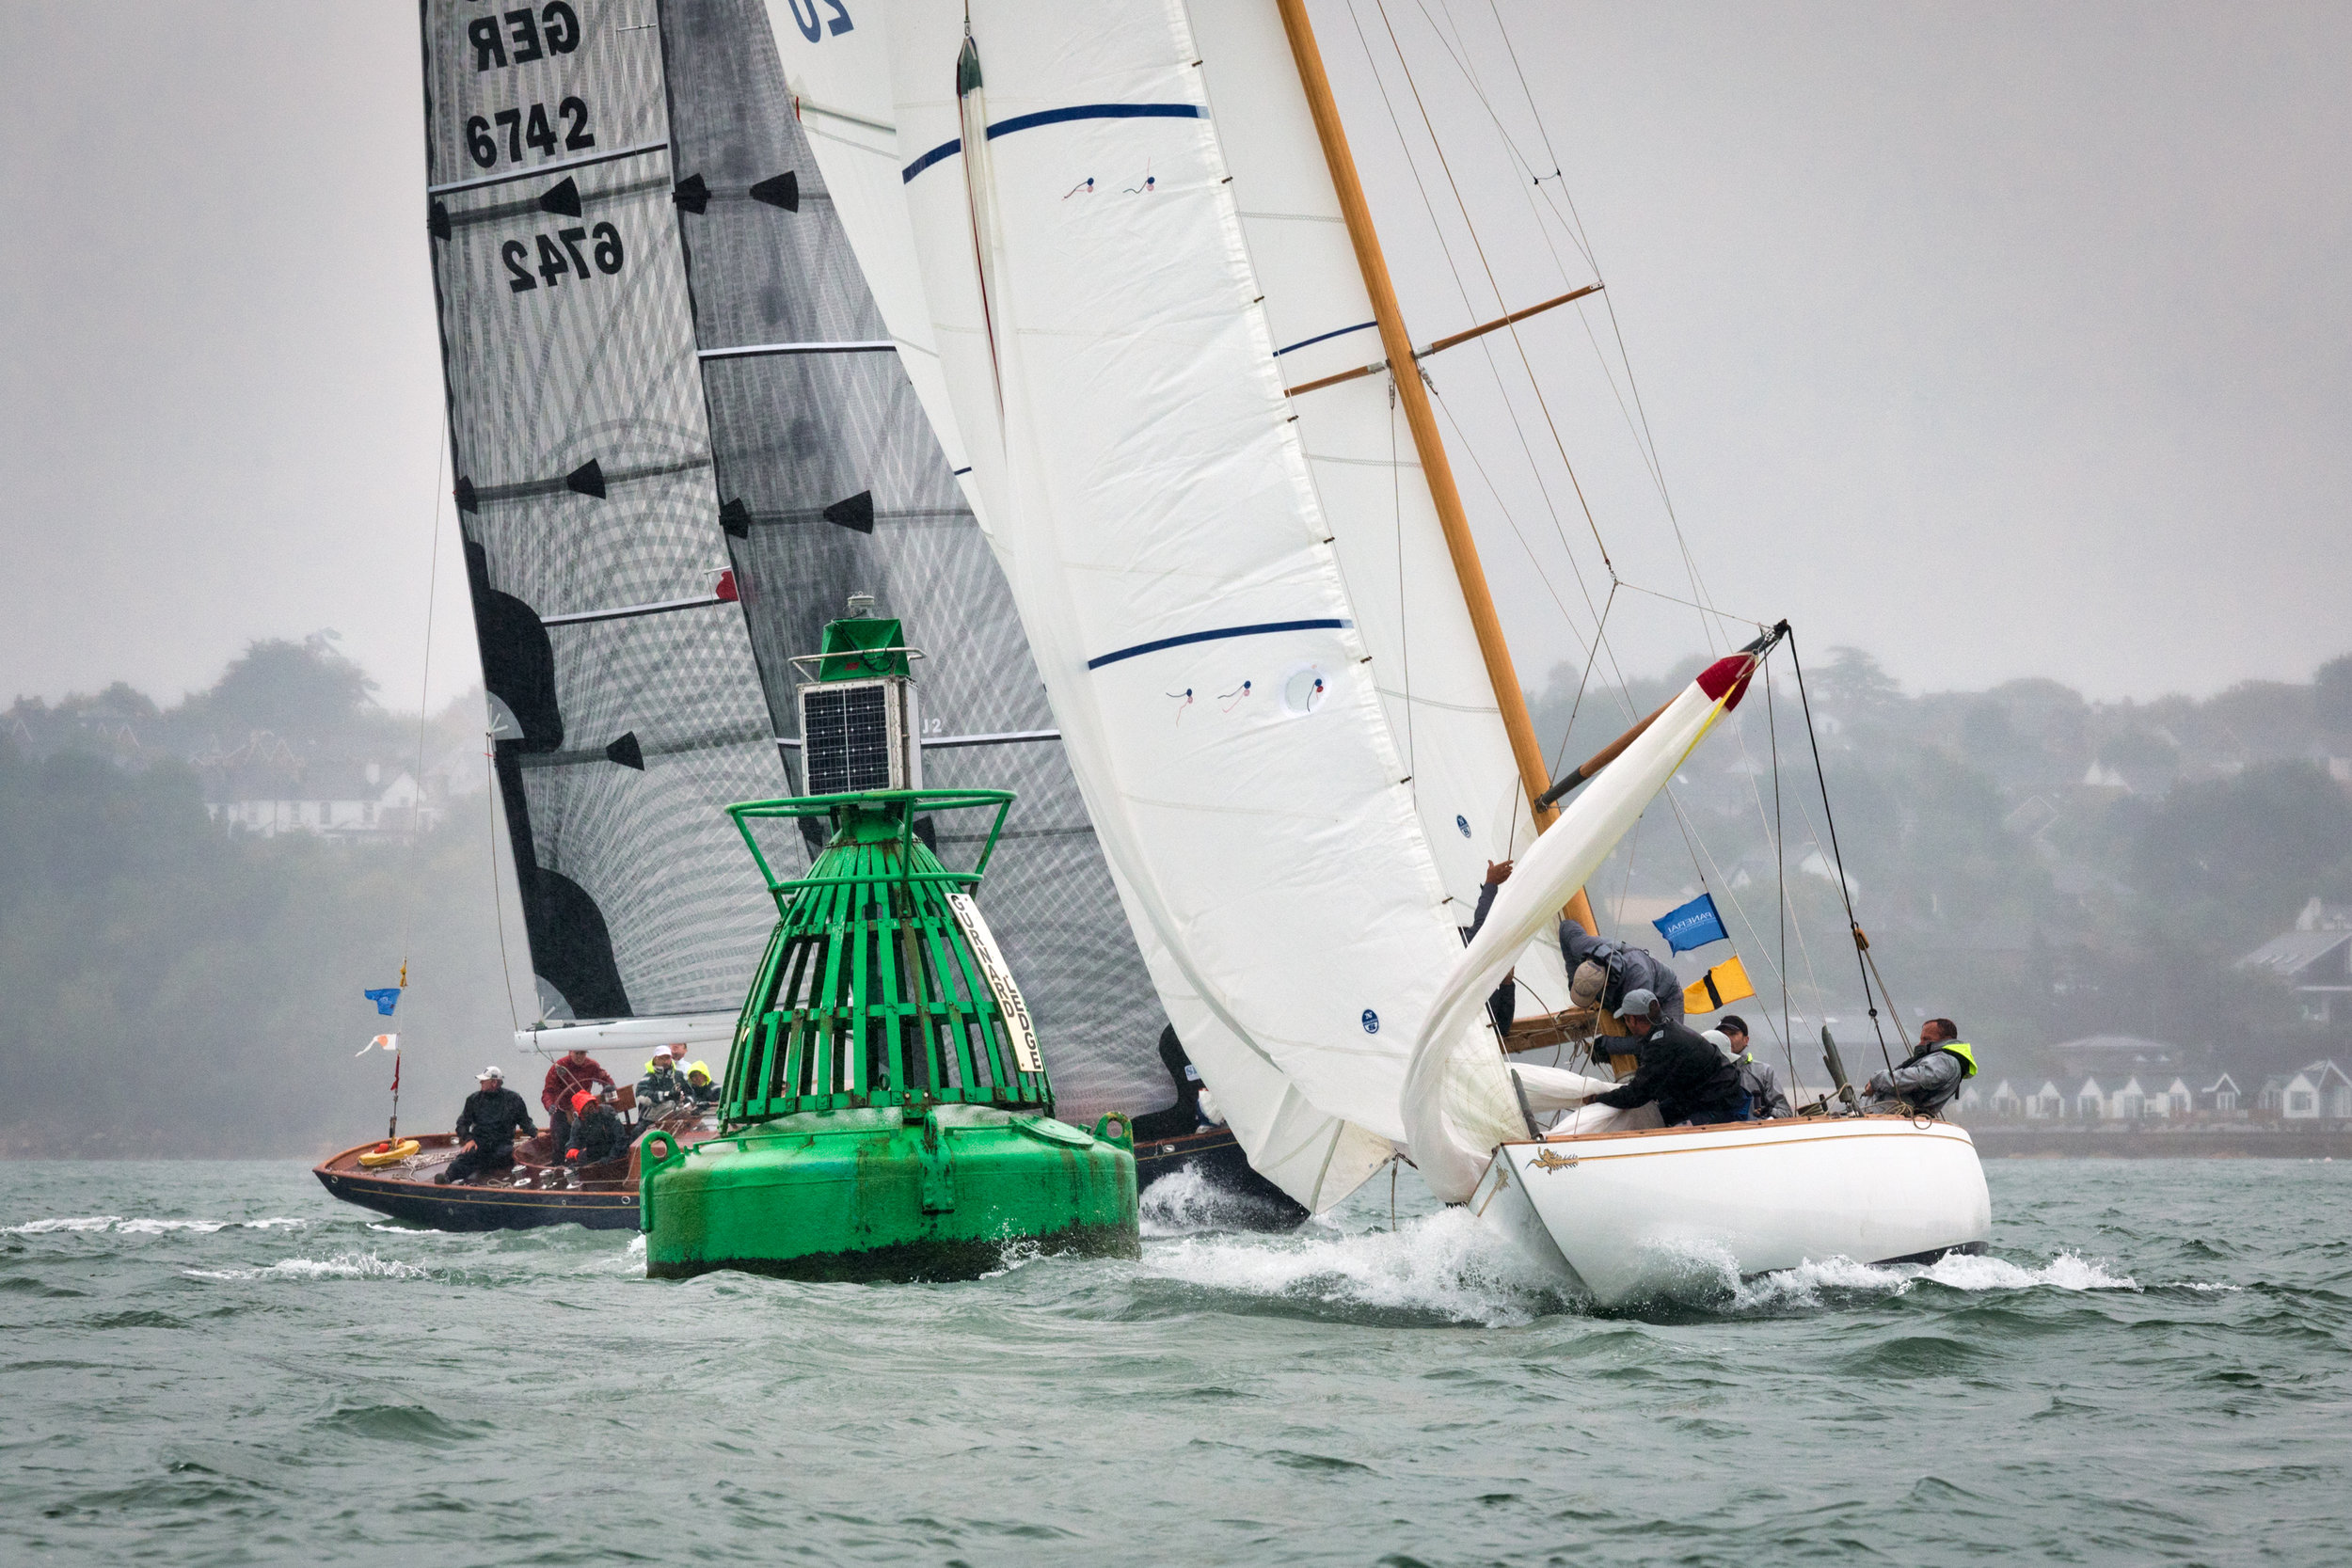 Challenging mark rounding and spinnaker hoists in heavy winds